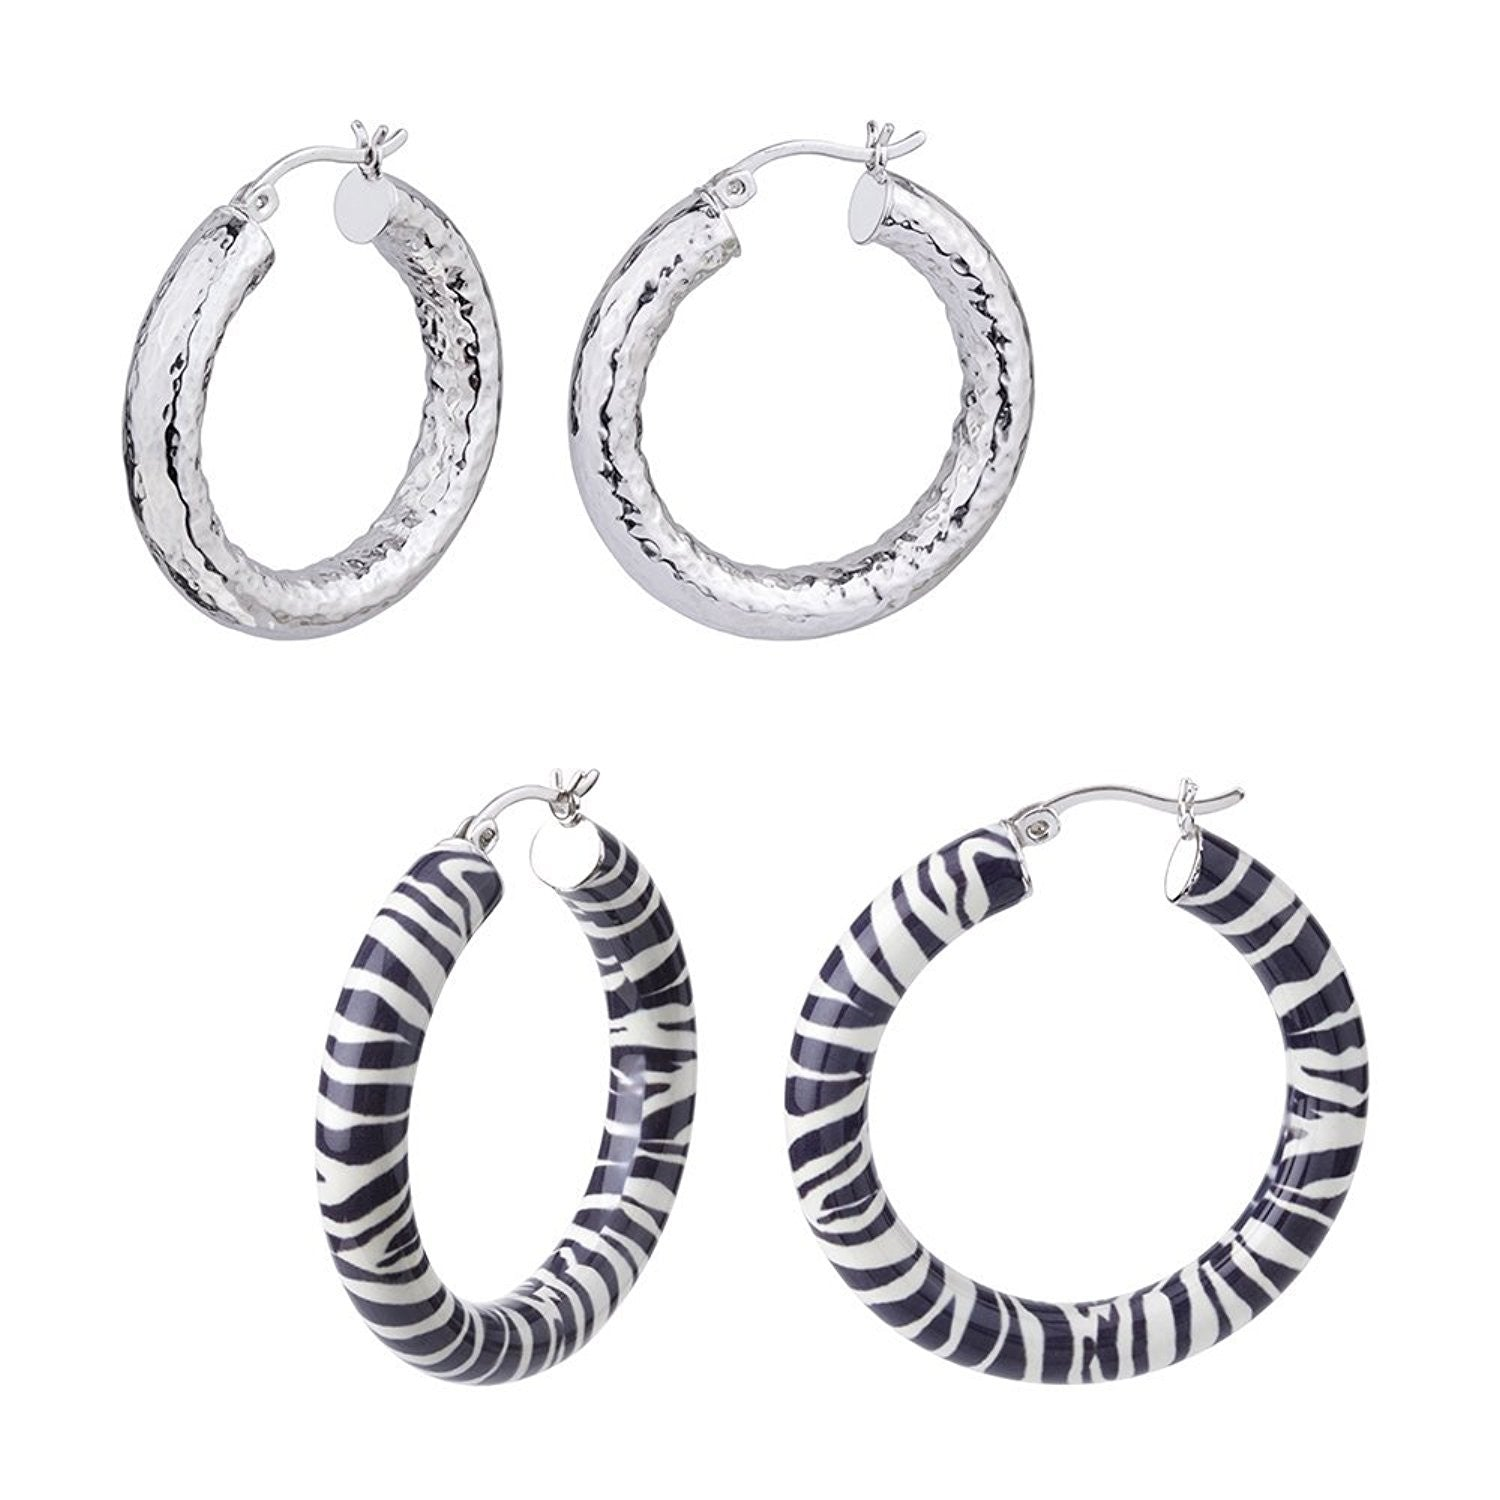 Zebra & Hammered Hoop Set